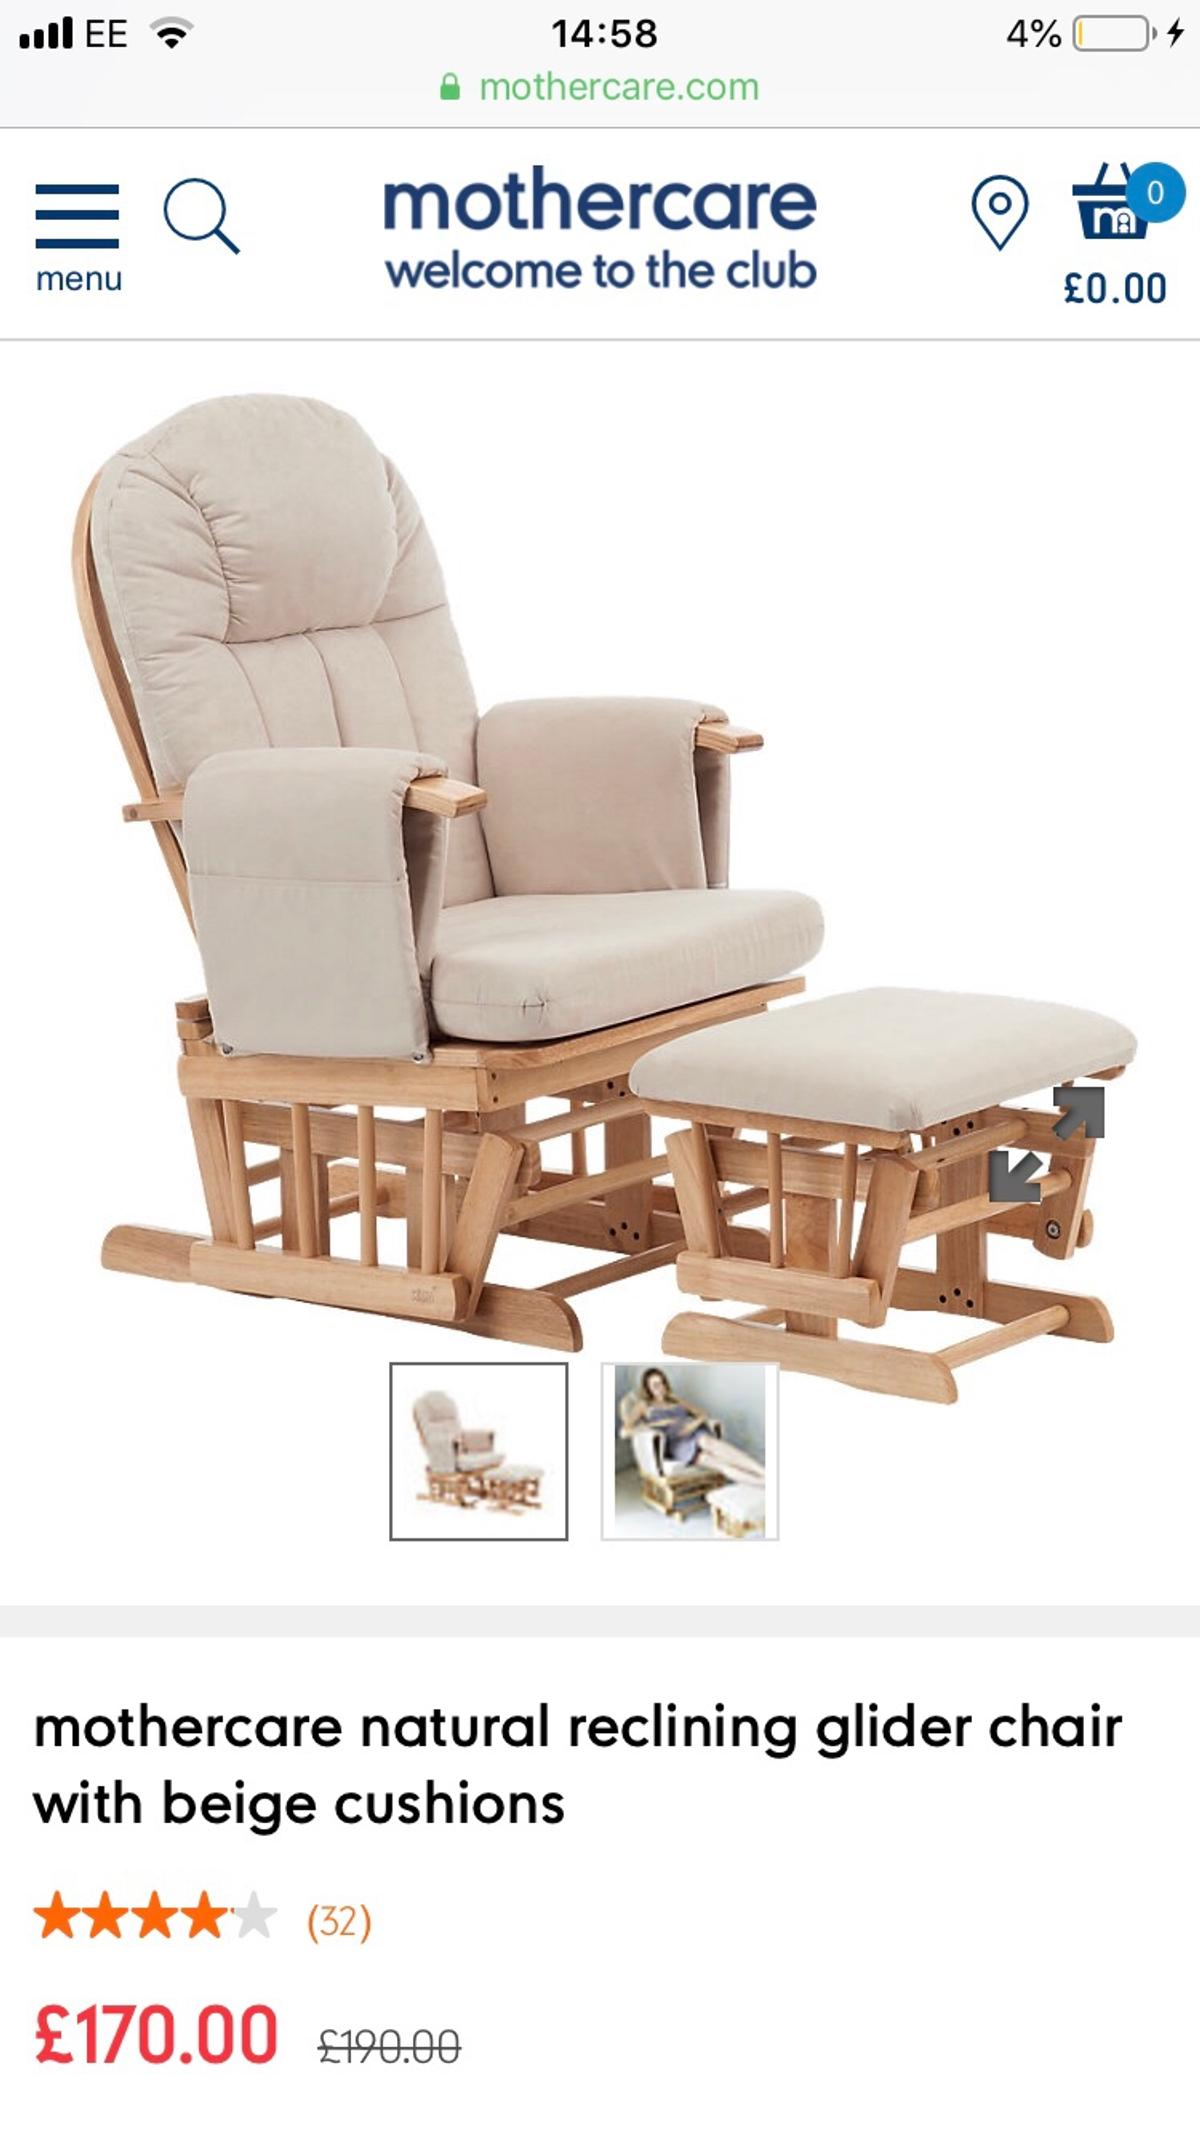 New Nursery Nursing Baby Rocking Glider Chair In Wa10 Helens